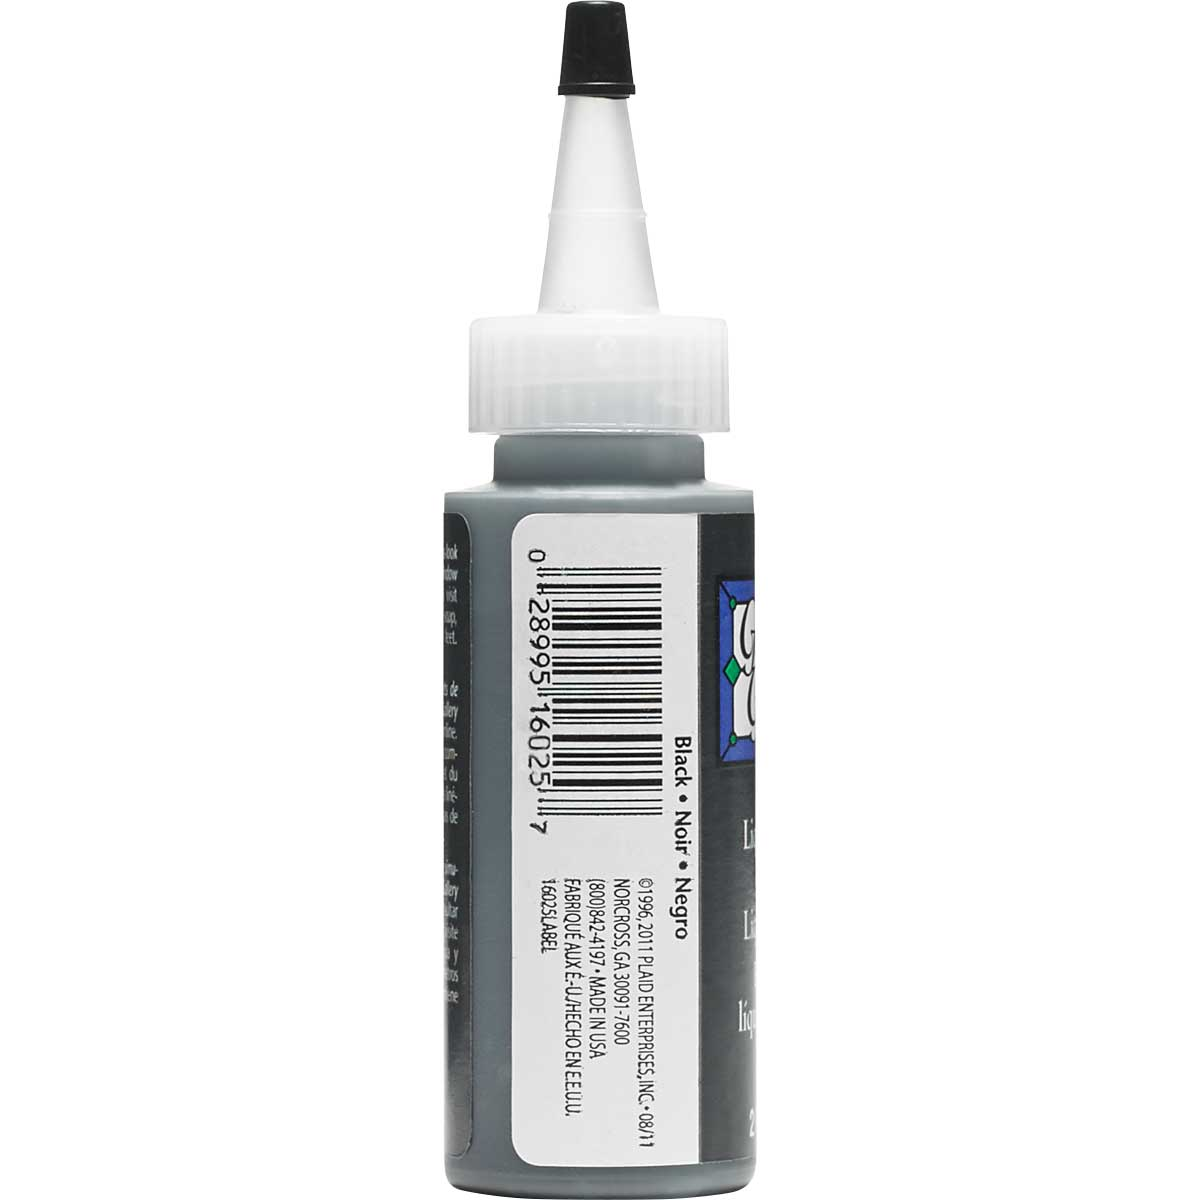 Gallery Glass ® Liquid Leading™ - Black, 2 oz. - 16025